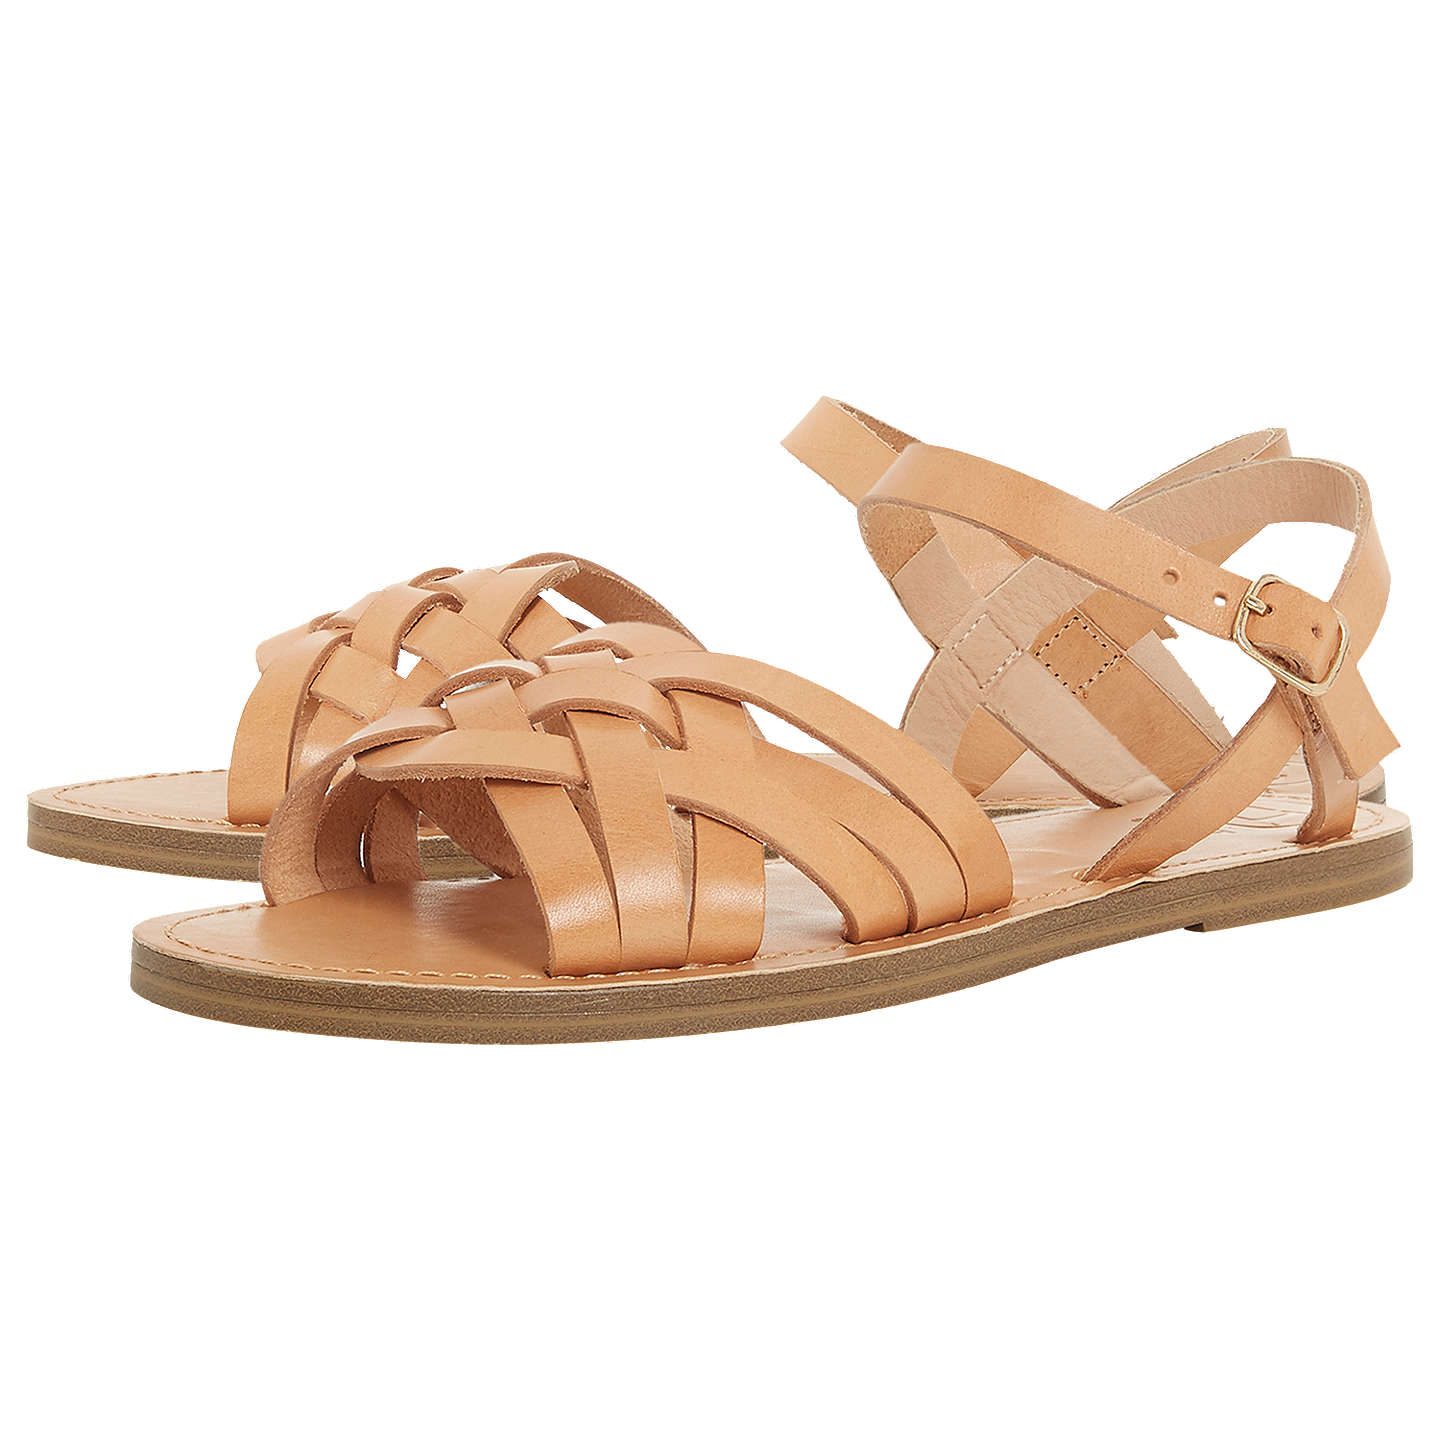 BuyDune Lattice Flat Sandals, Tan Leather, 3 Online at johnlewis.com